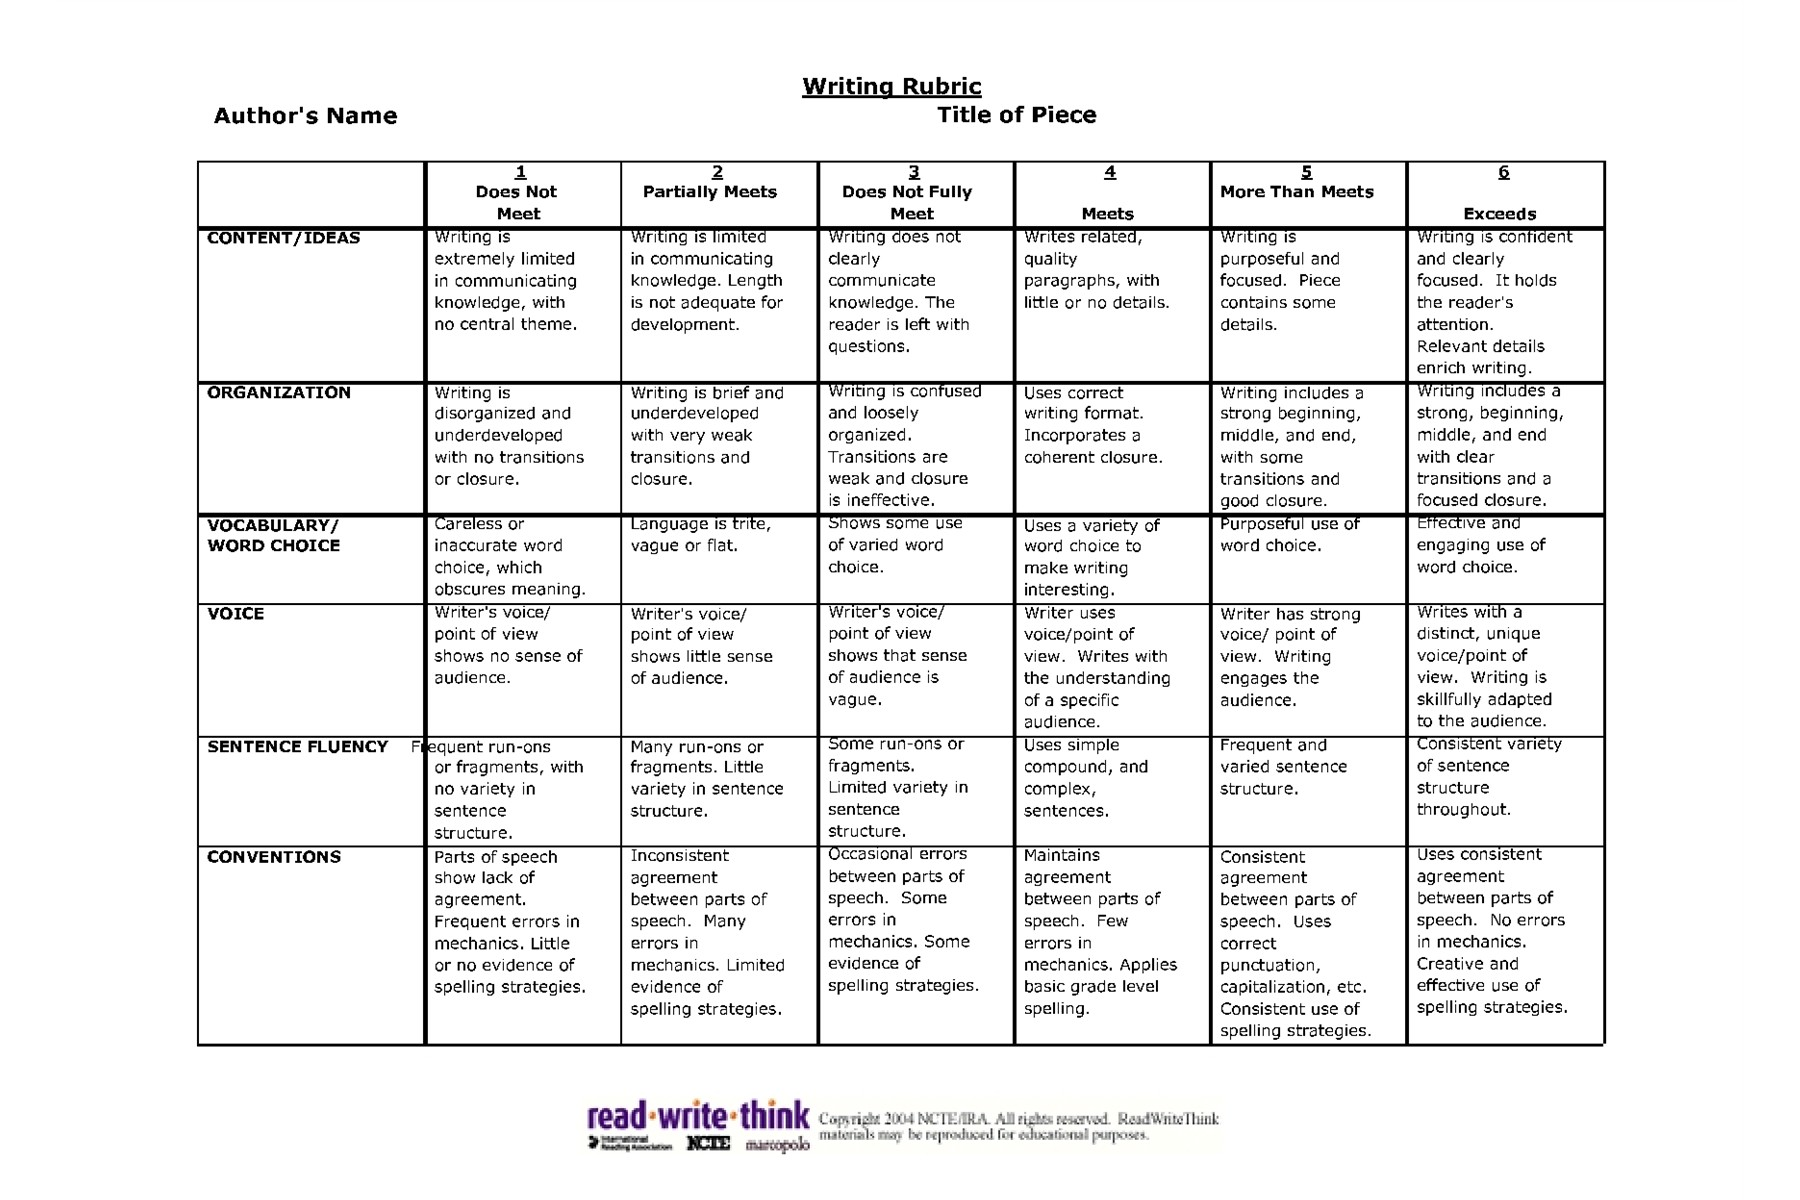 rubric for persuasive essays This writing lesson plan shows how students can revise their own persuasive essays using a writing rubric and reflect on their strengths and weaknesses as a writer this two class period lesson plan is appropriate for a middle or high school english class.